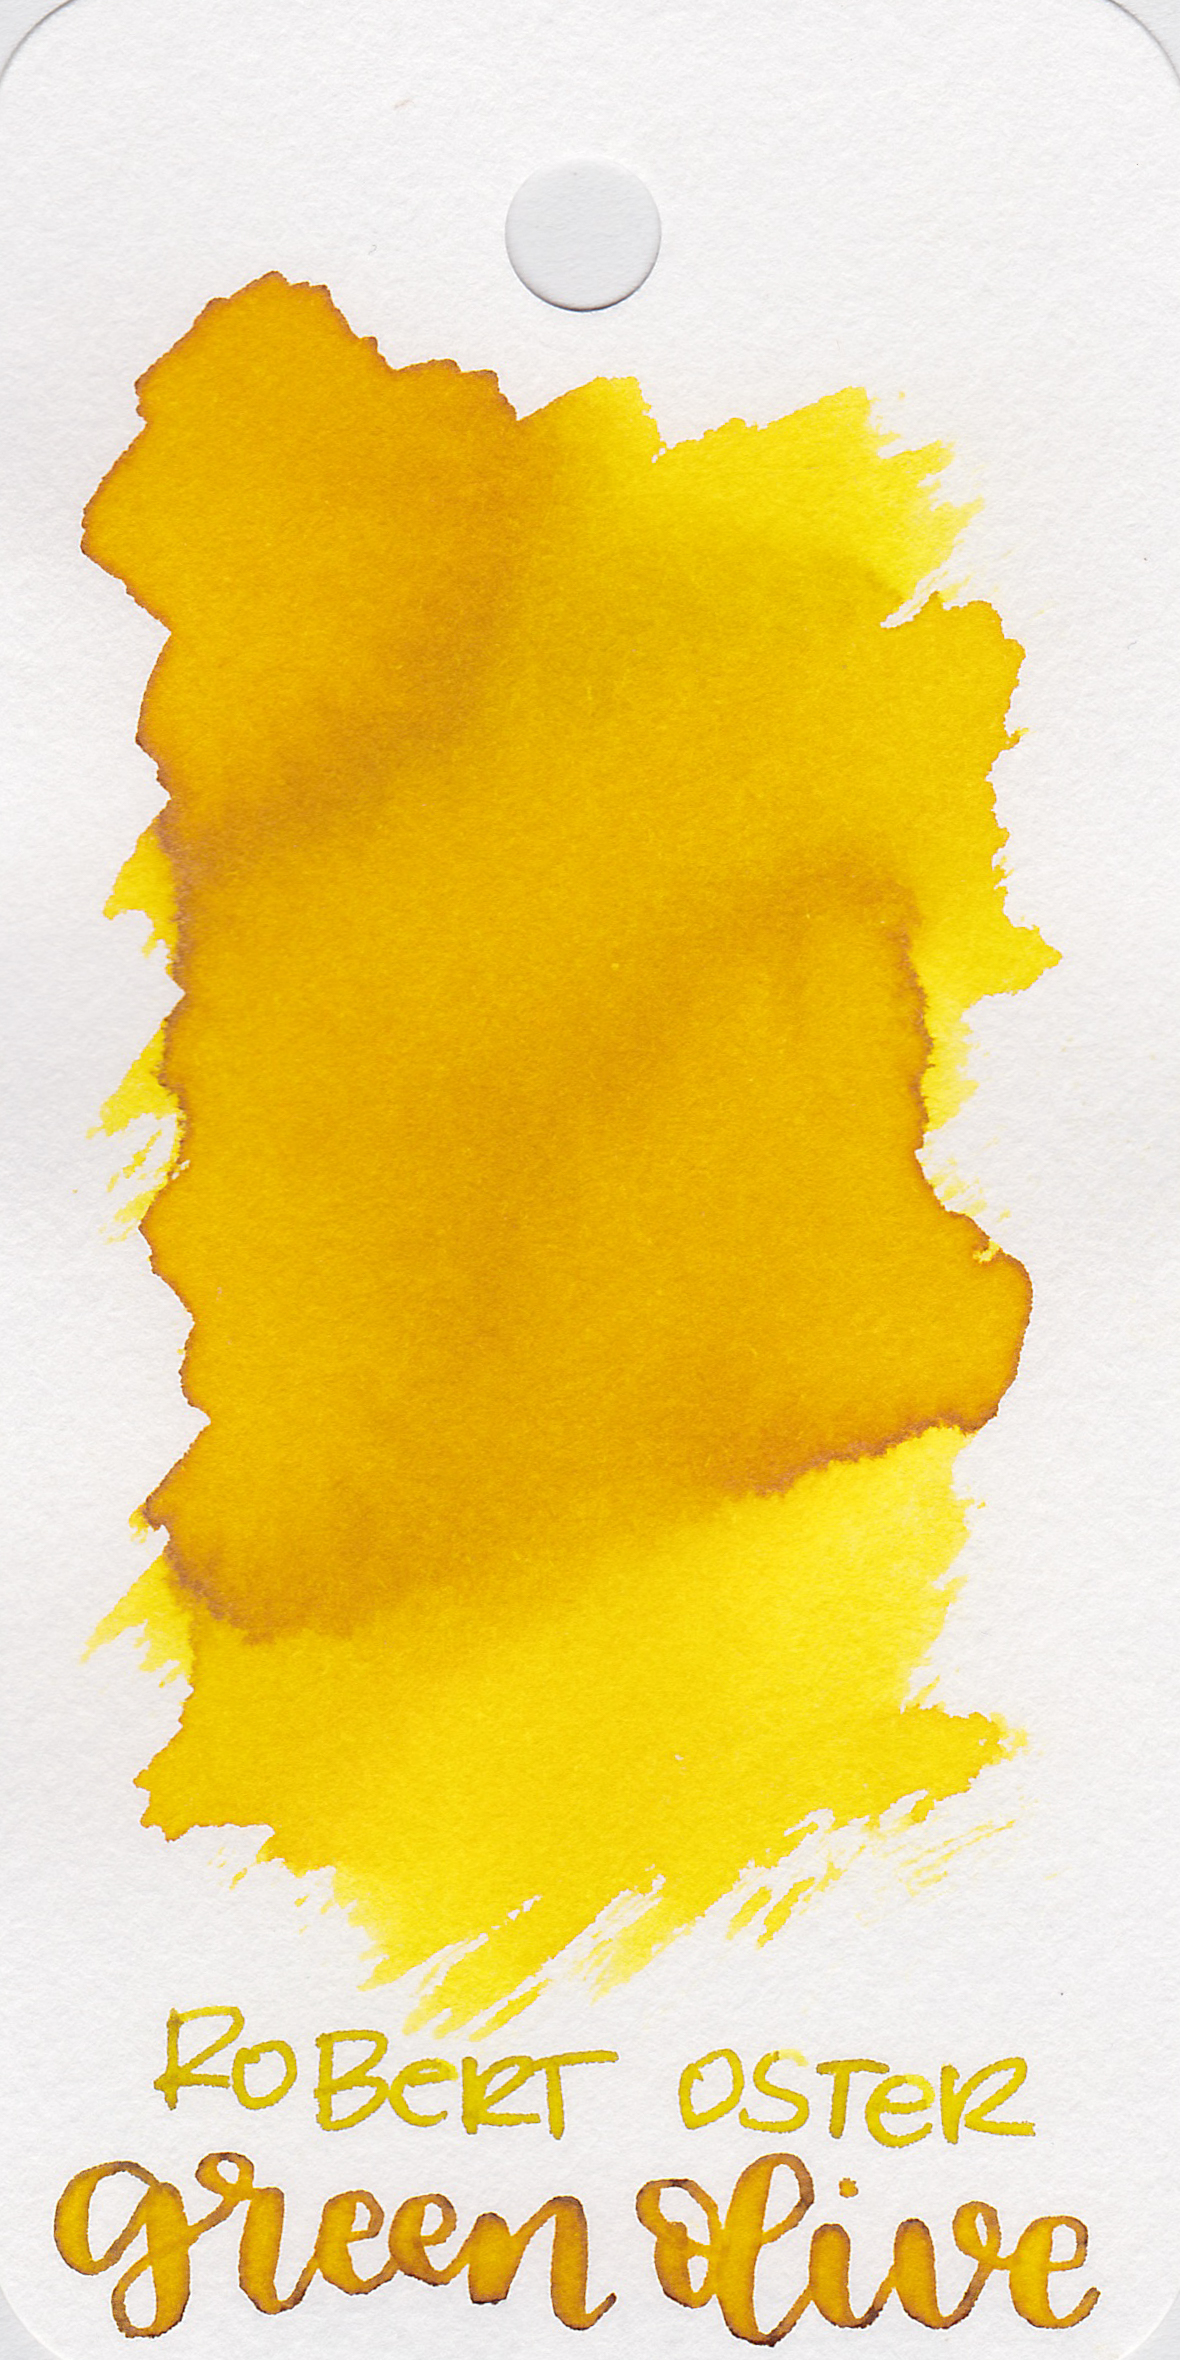 The color: - Green Olive ranges from a bright to medium yellow.